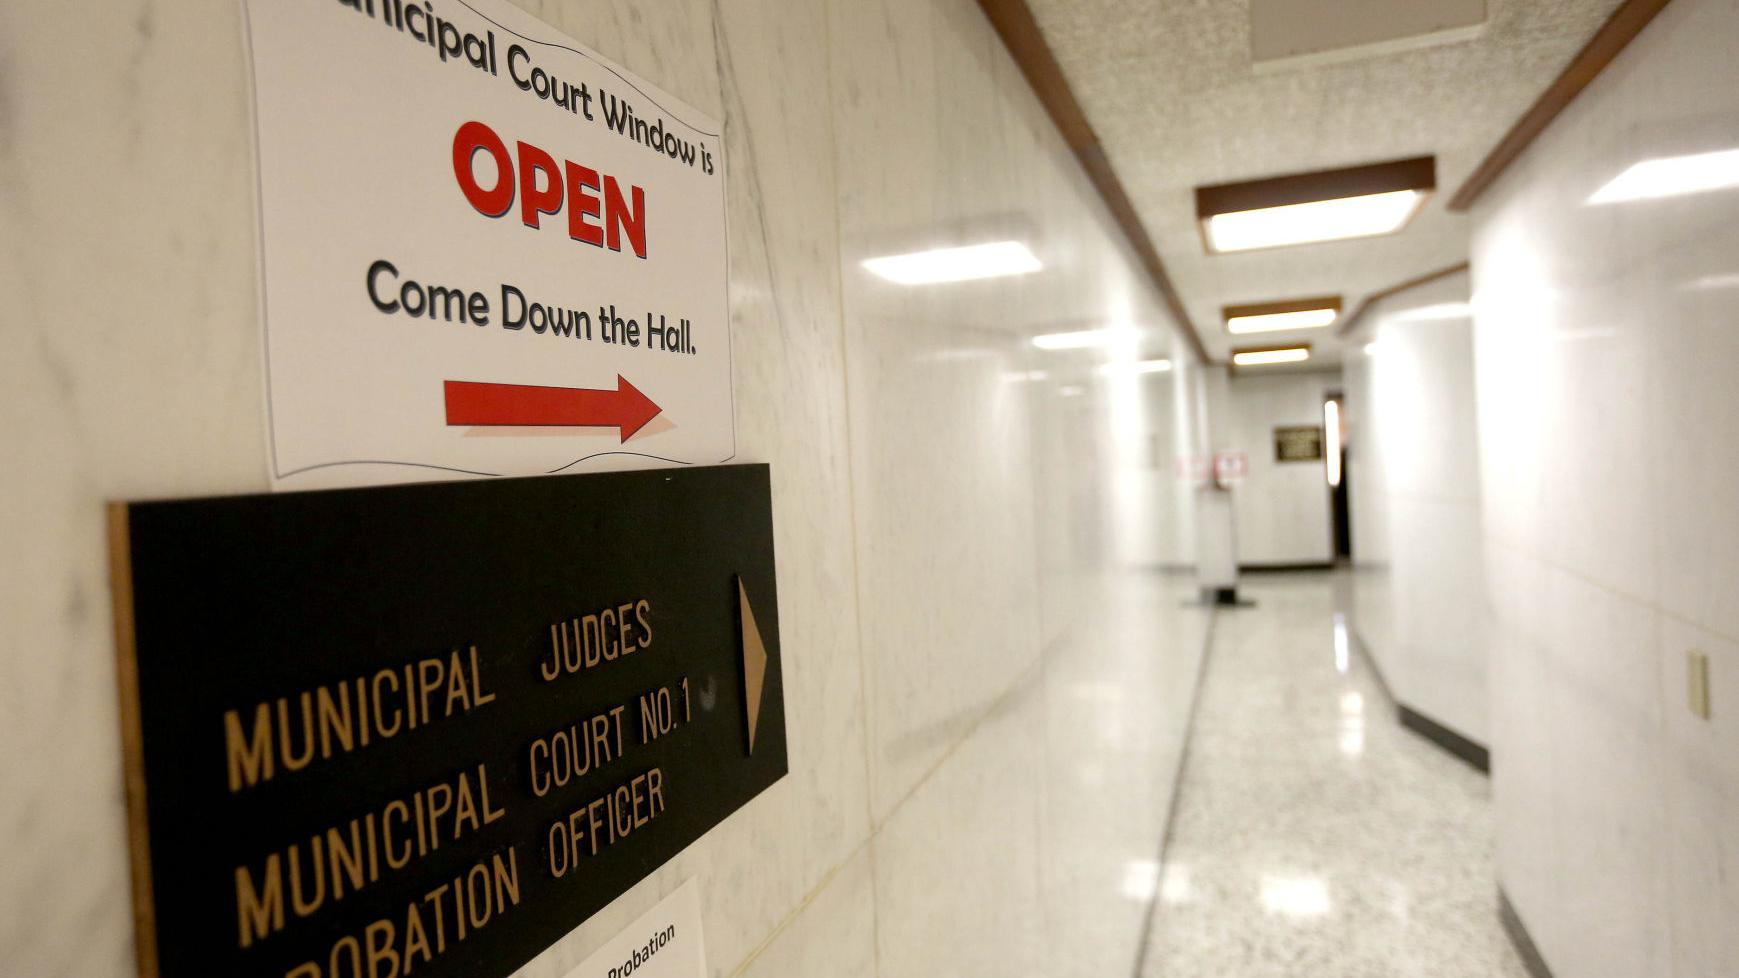 Editorial board: Moving to one full-time municipal judge is the right move by the City Council